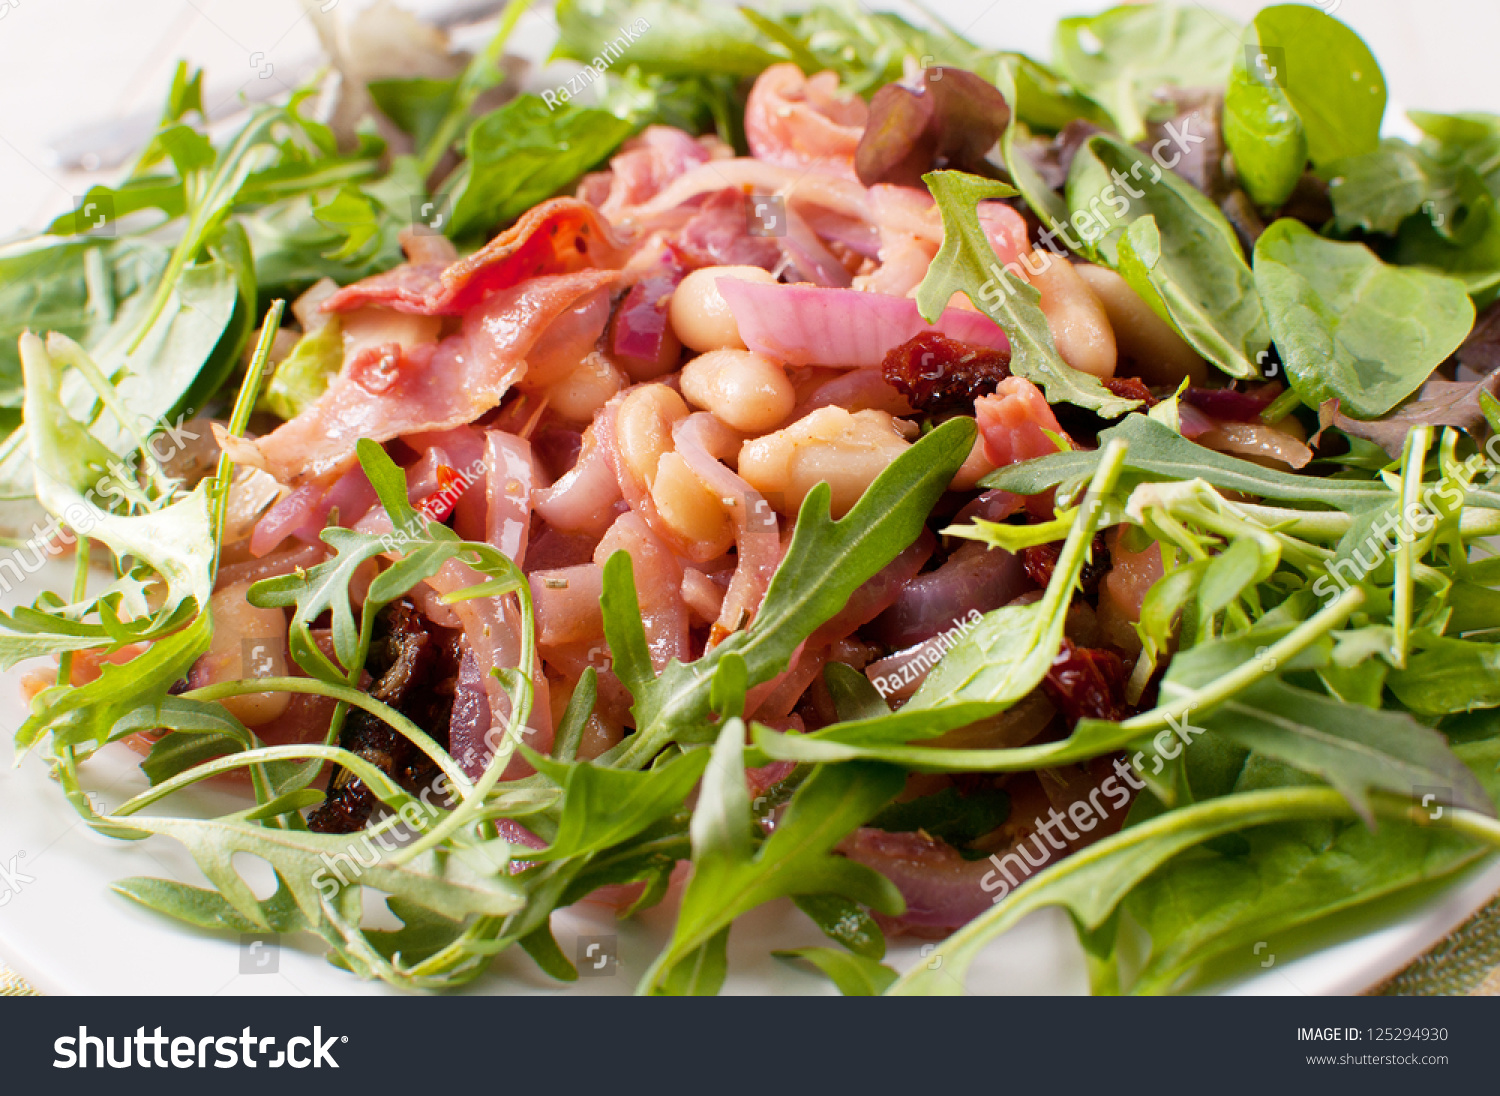 Red And Green Salad With Beans And Onion Close Up Stock ...